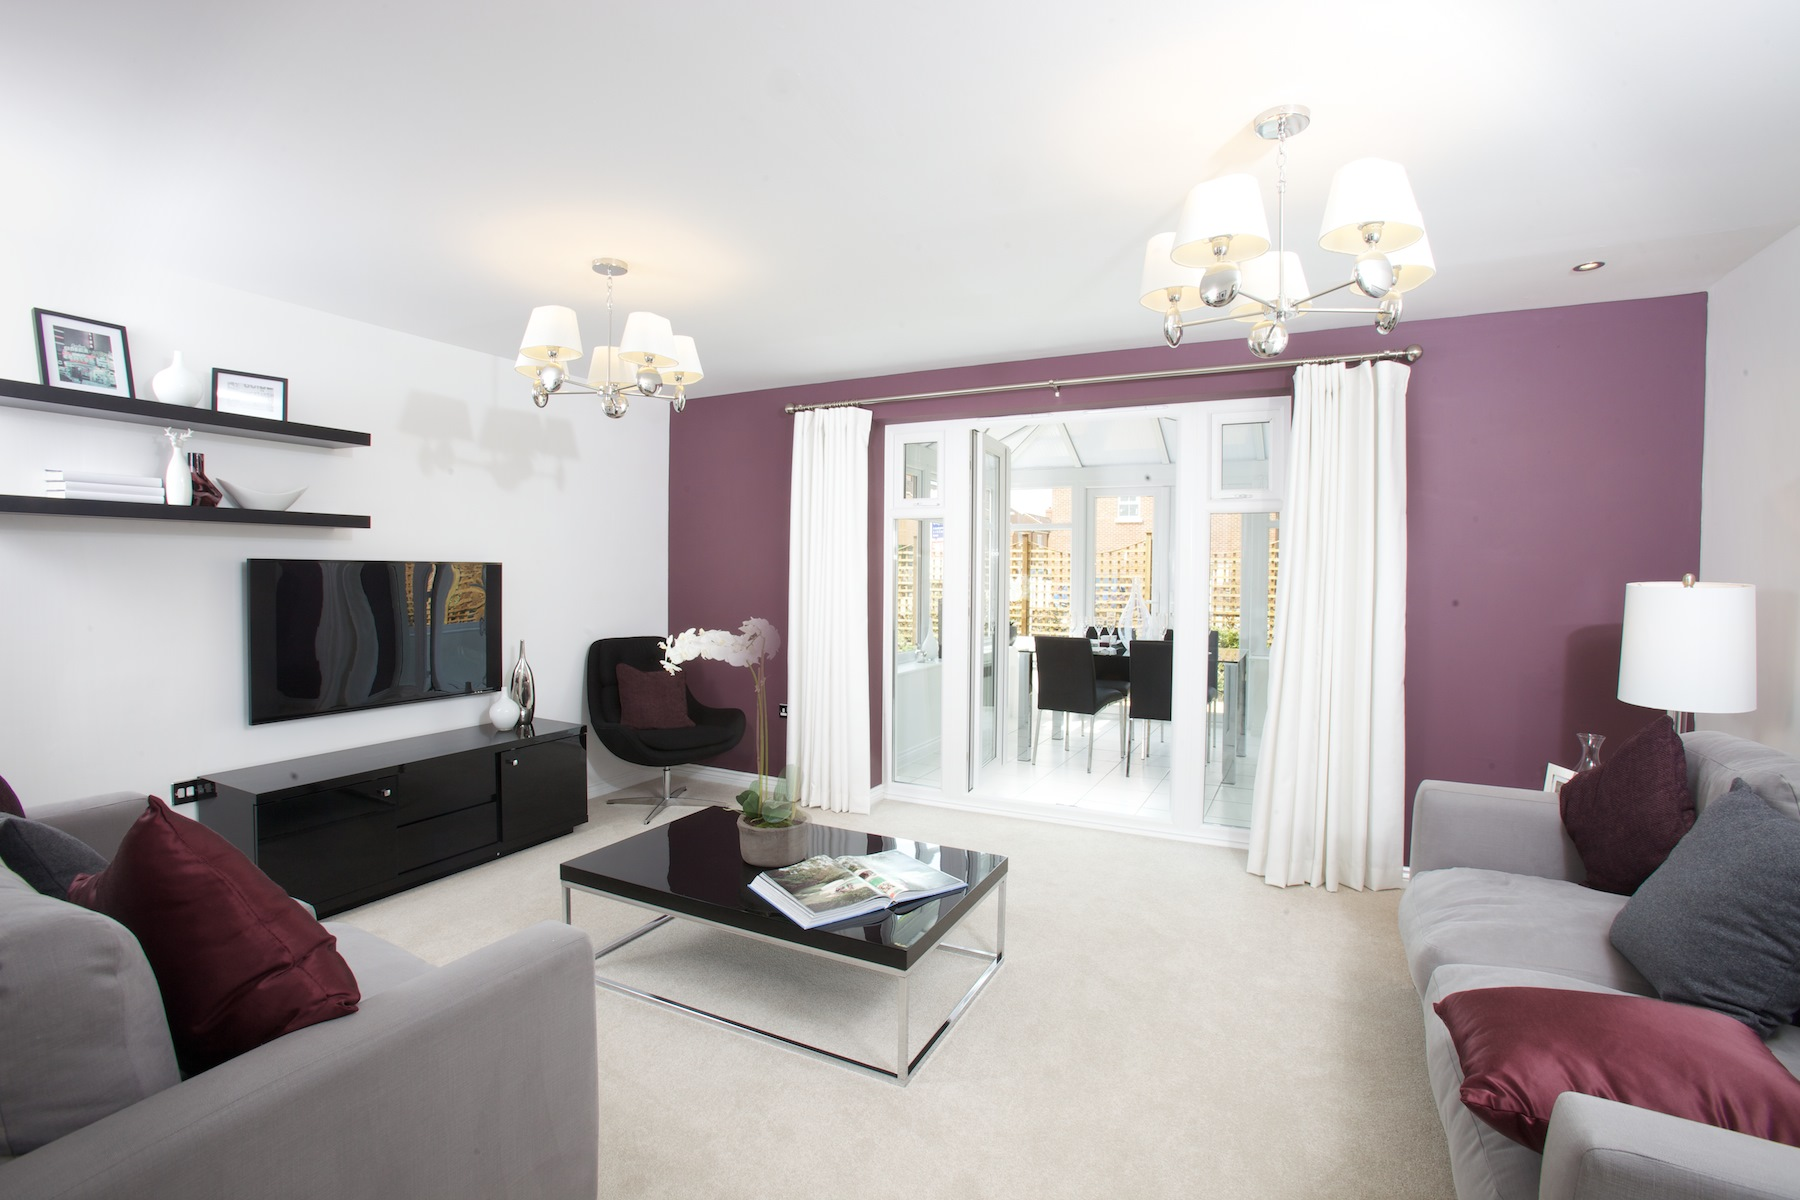 Kings Copse Show Home   Living Room